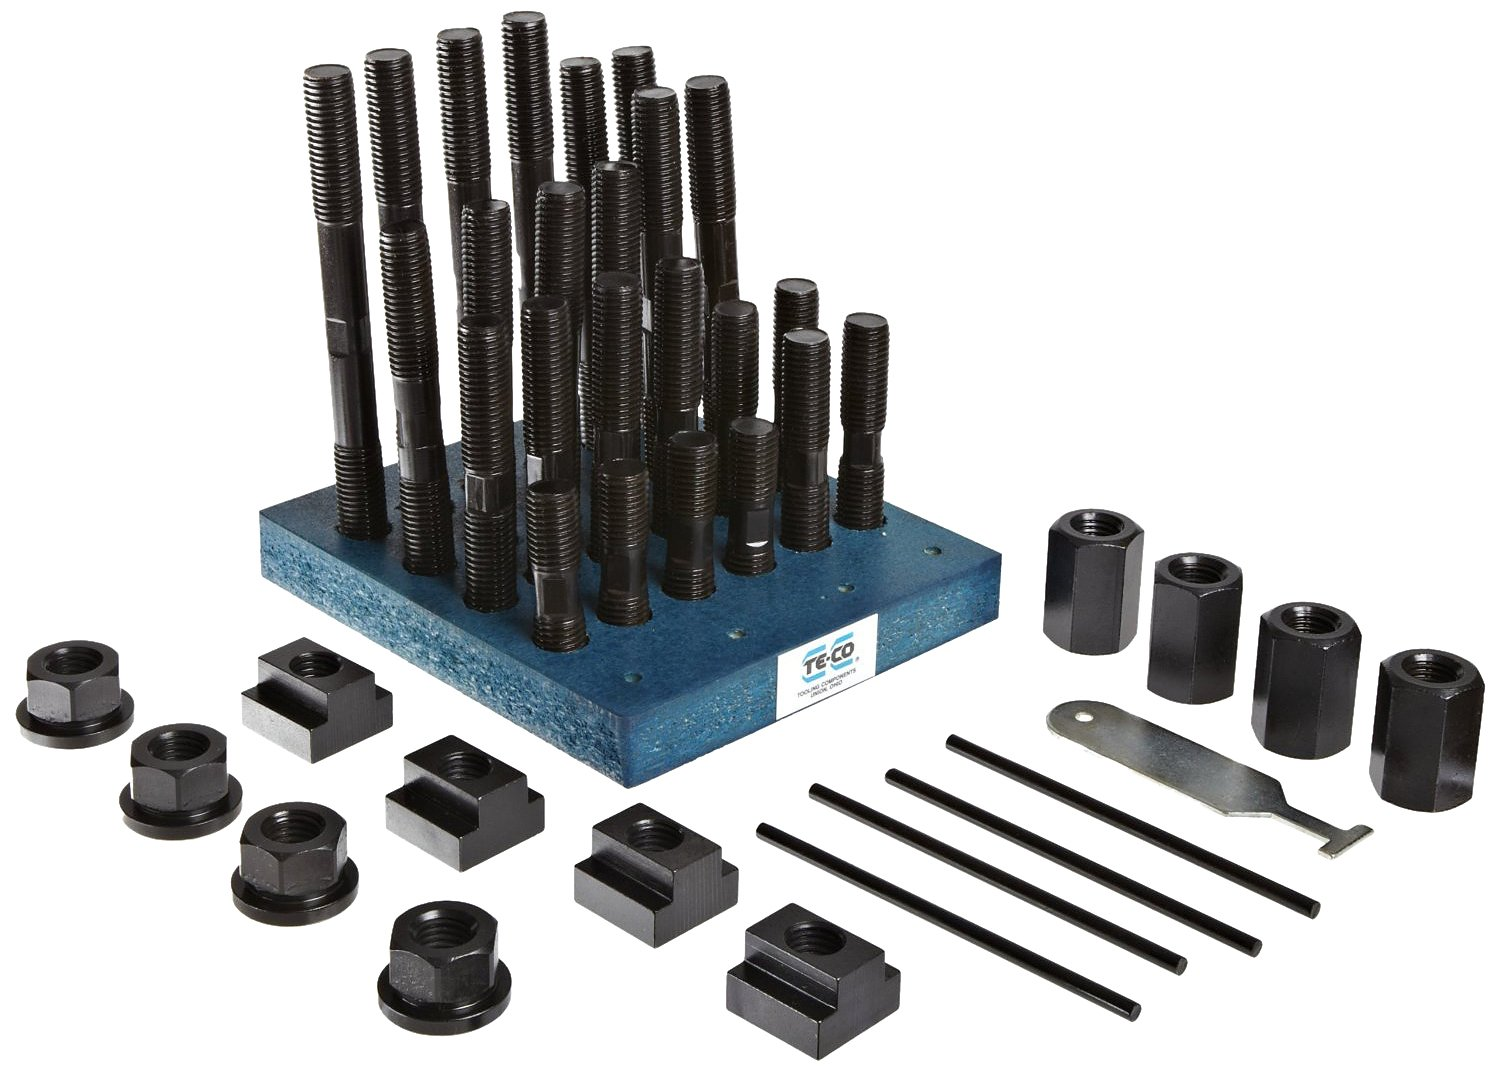 Te-Co 20603 38 Piece T-Nut and Stud Kit, 3/8''-16 Stud x 1/2'' Table T-Slot